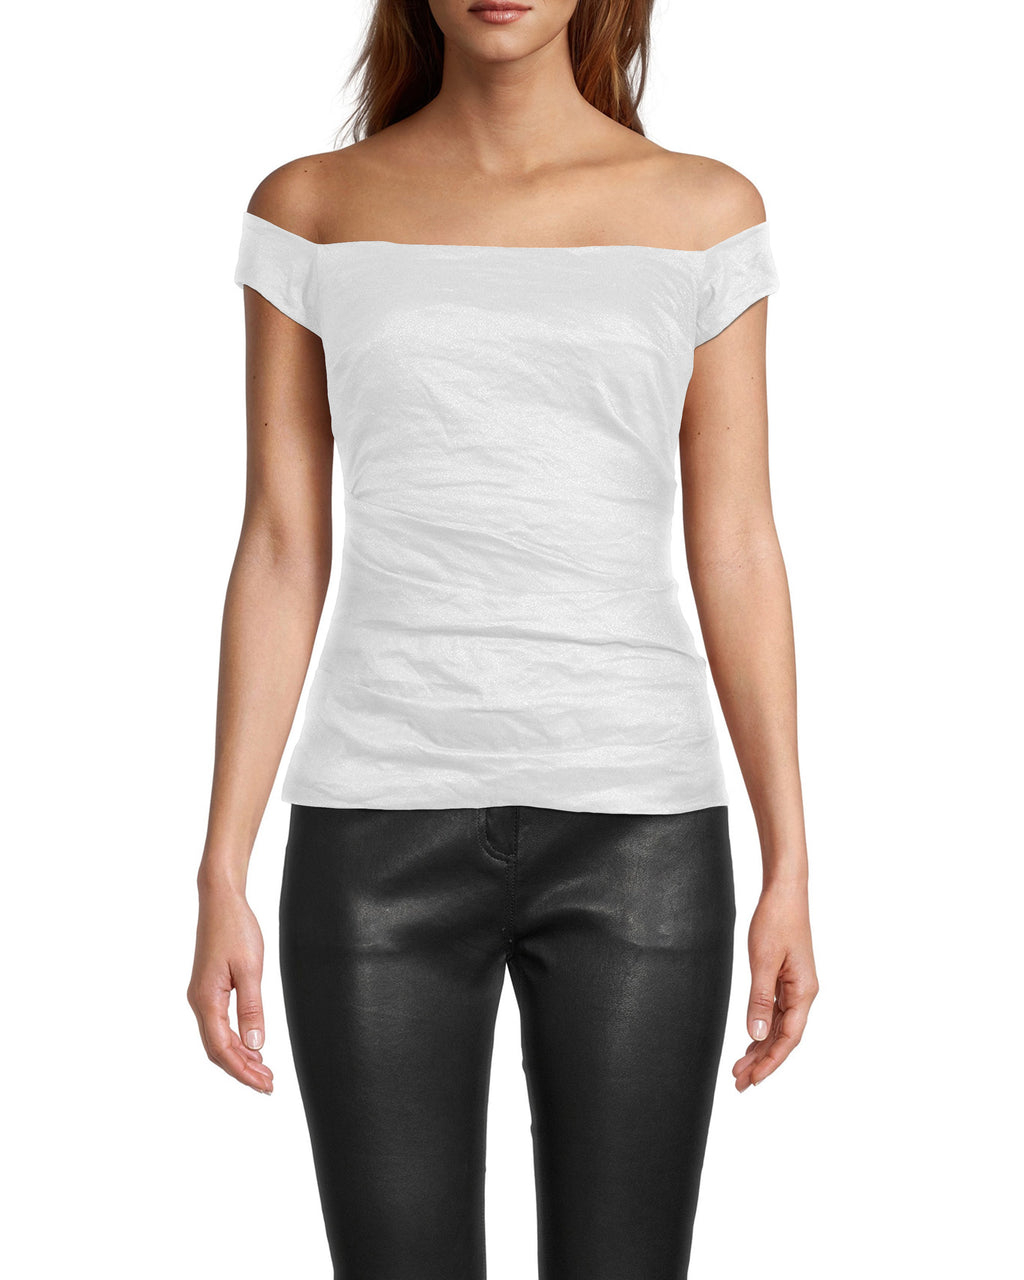 BB0271 - LOLA COTTON METAL TOP - tops - shirts - Designed in our best-selling cotton metal fabrication, this elevated basic is off the shoulder with flattering fabric ruching throughout. Add 1 line break Stylist tip: Dress it up for date night with heels or down during the day with denim.